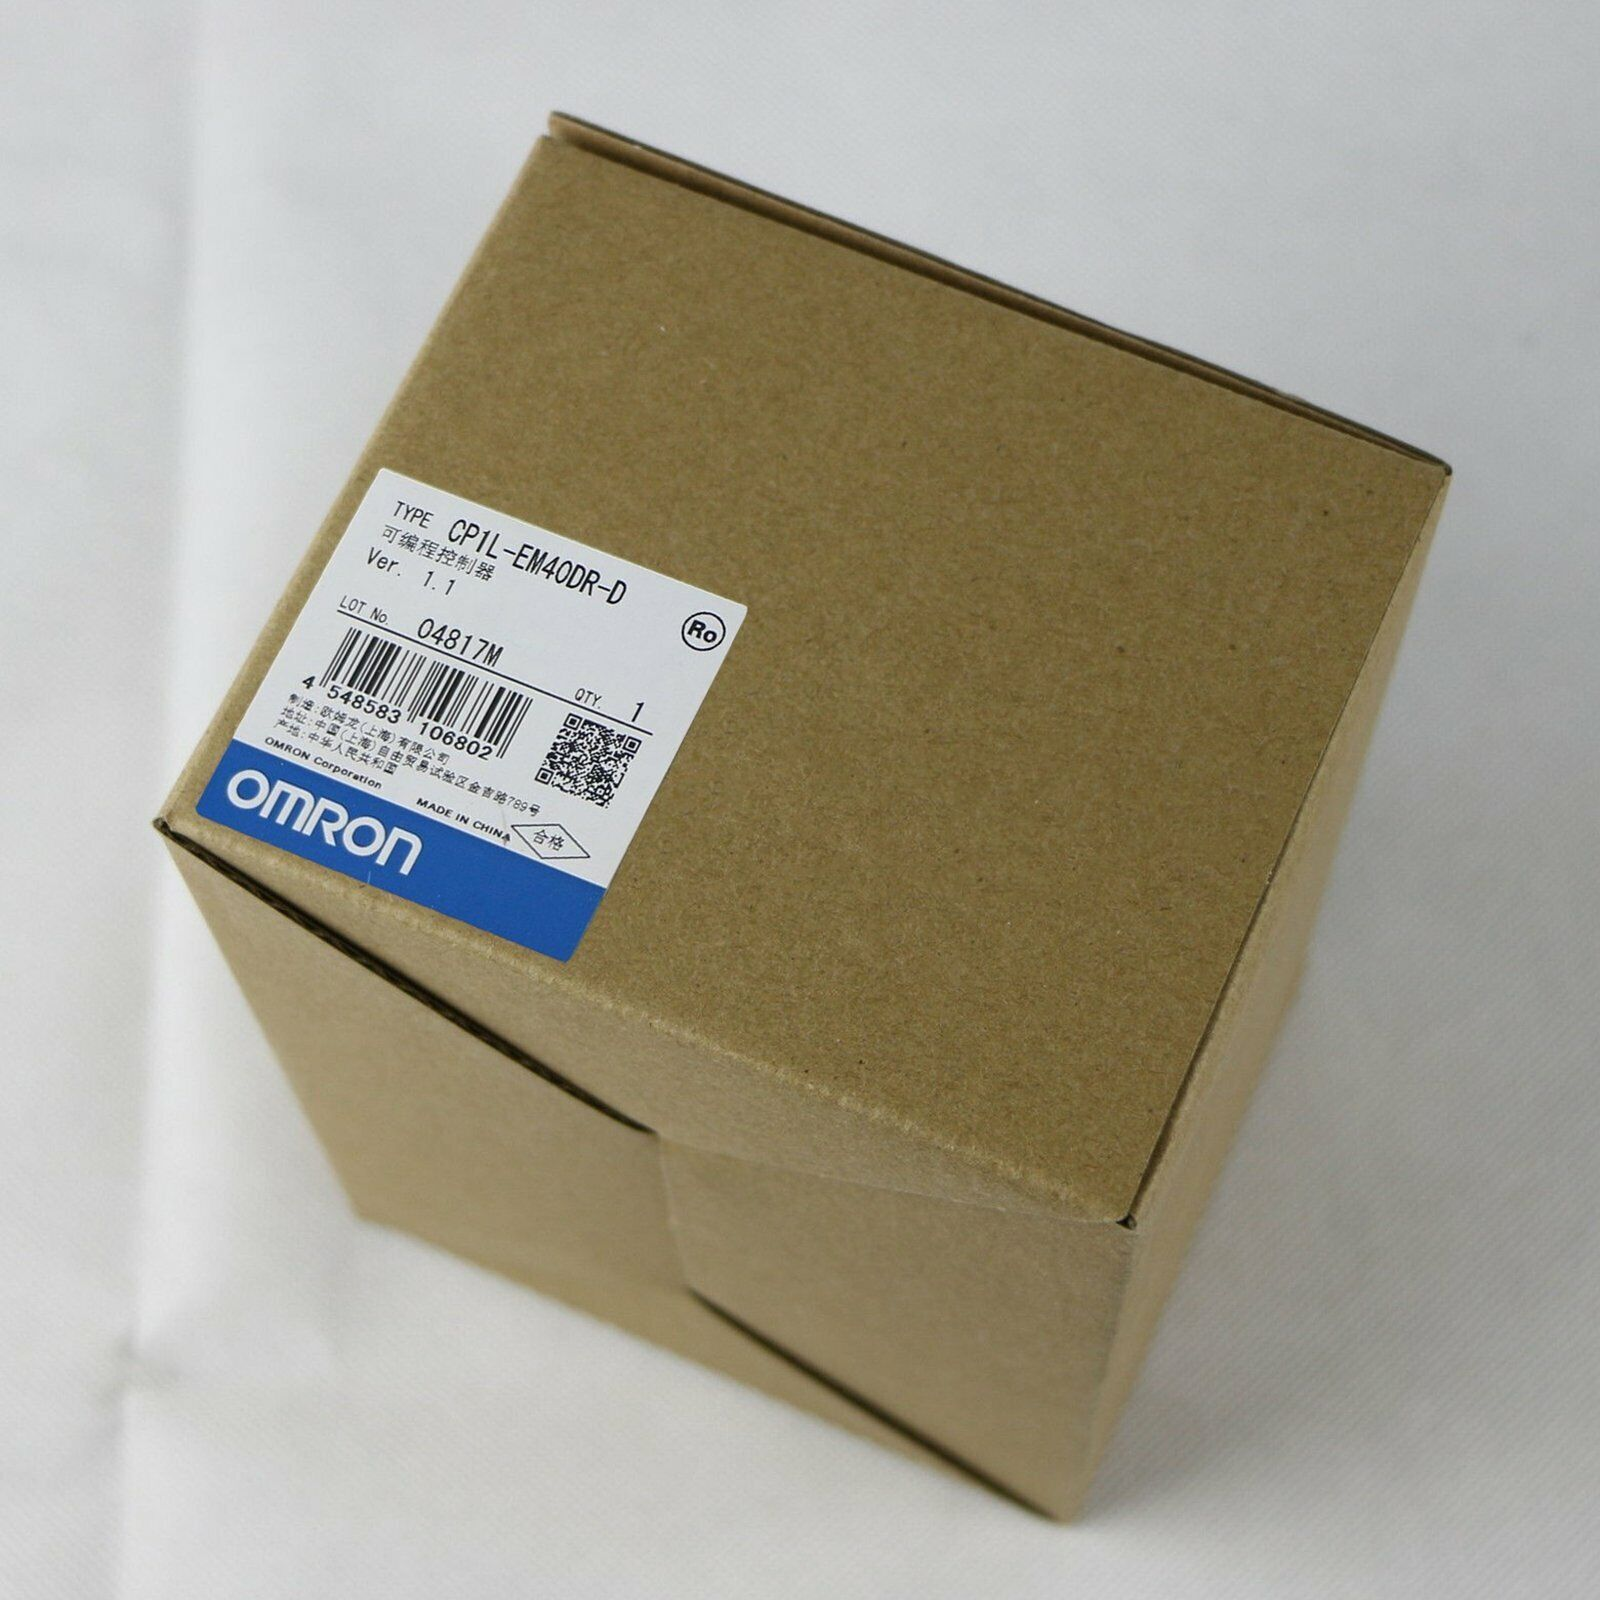 1pc for new Omron CP1L-EM40DR-D by EMS or DHL